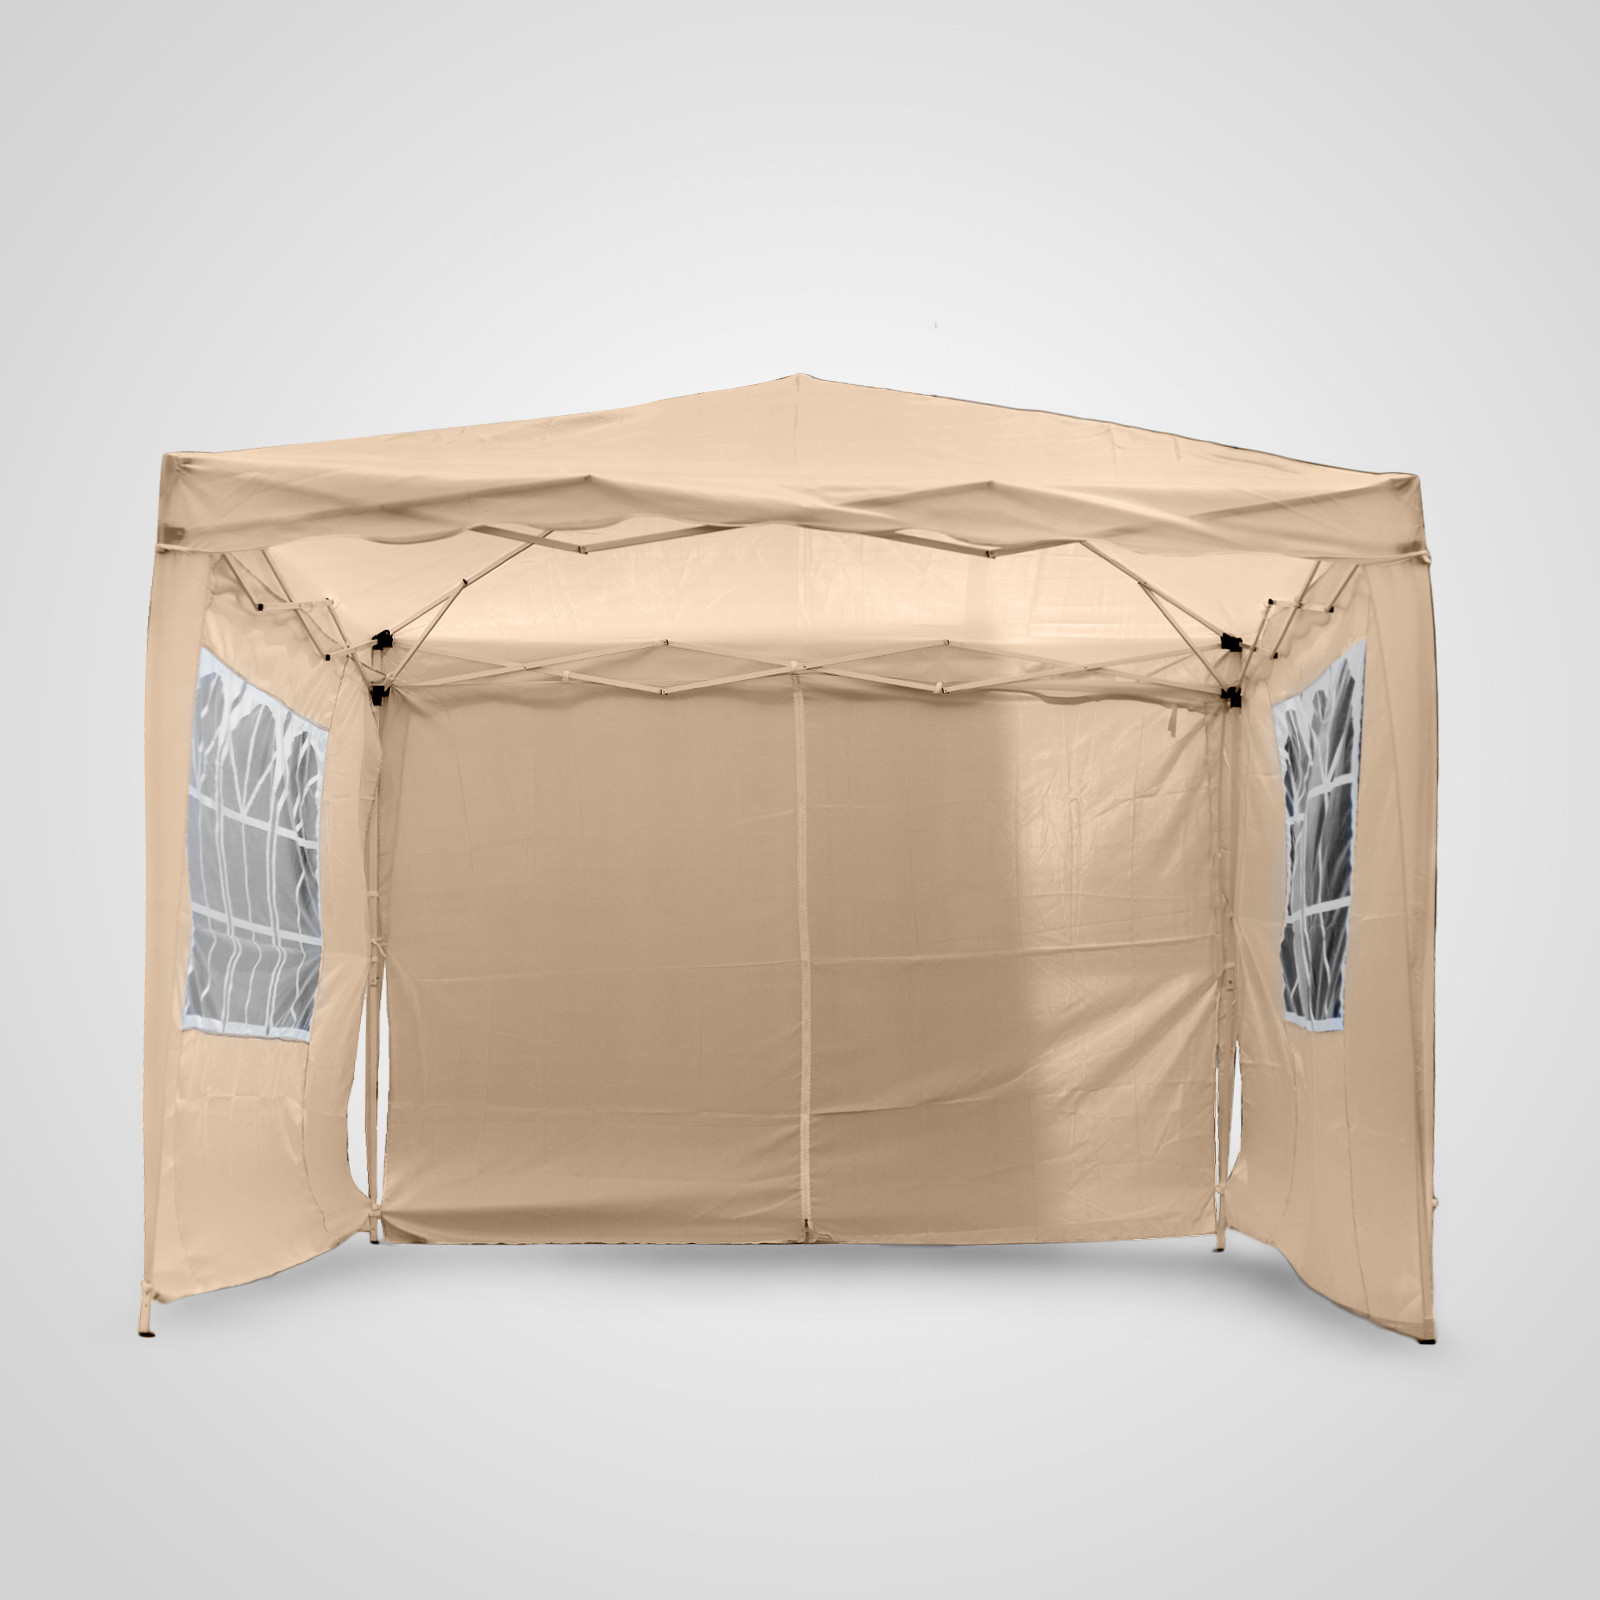 Gazebo Awning 3x3m Pop Up Gazebo Tent Waterproof Canopy Awning Patio Sun